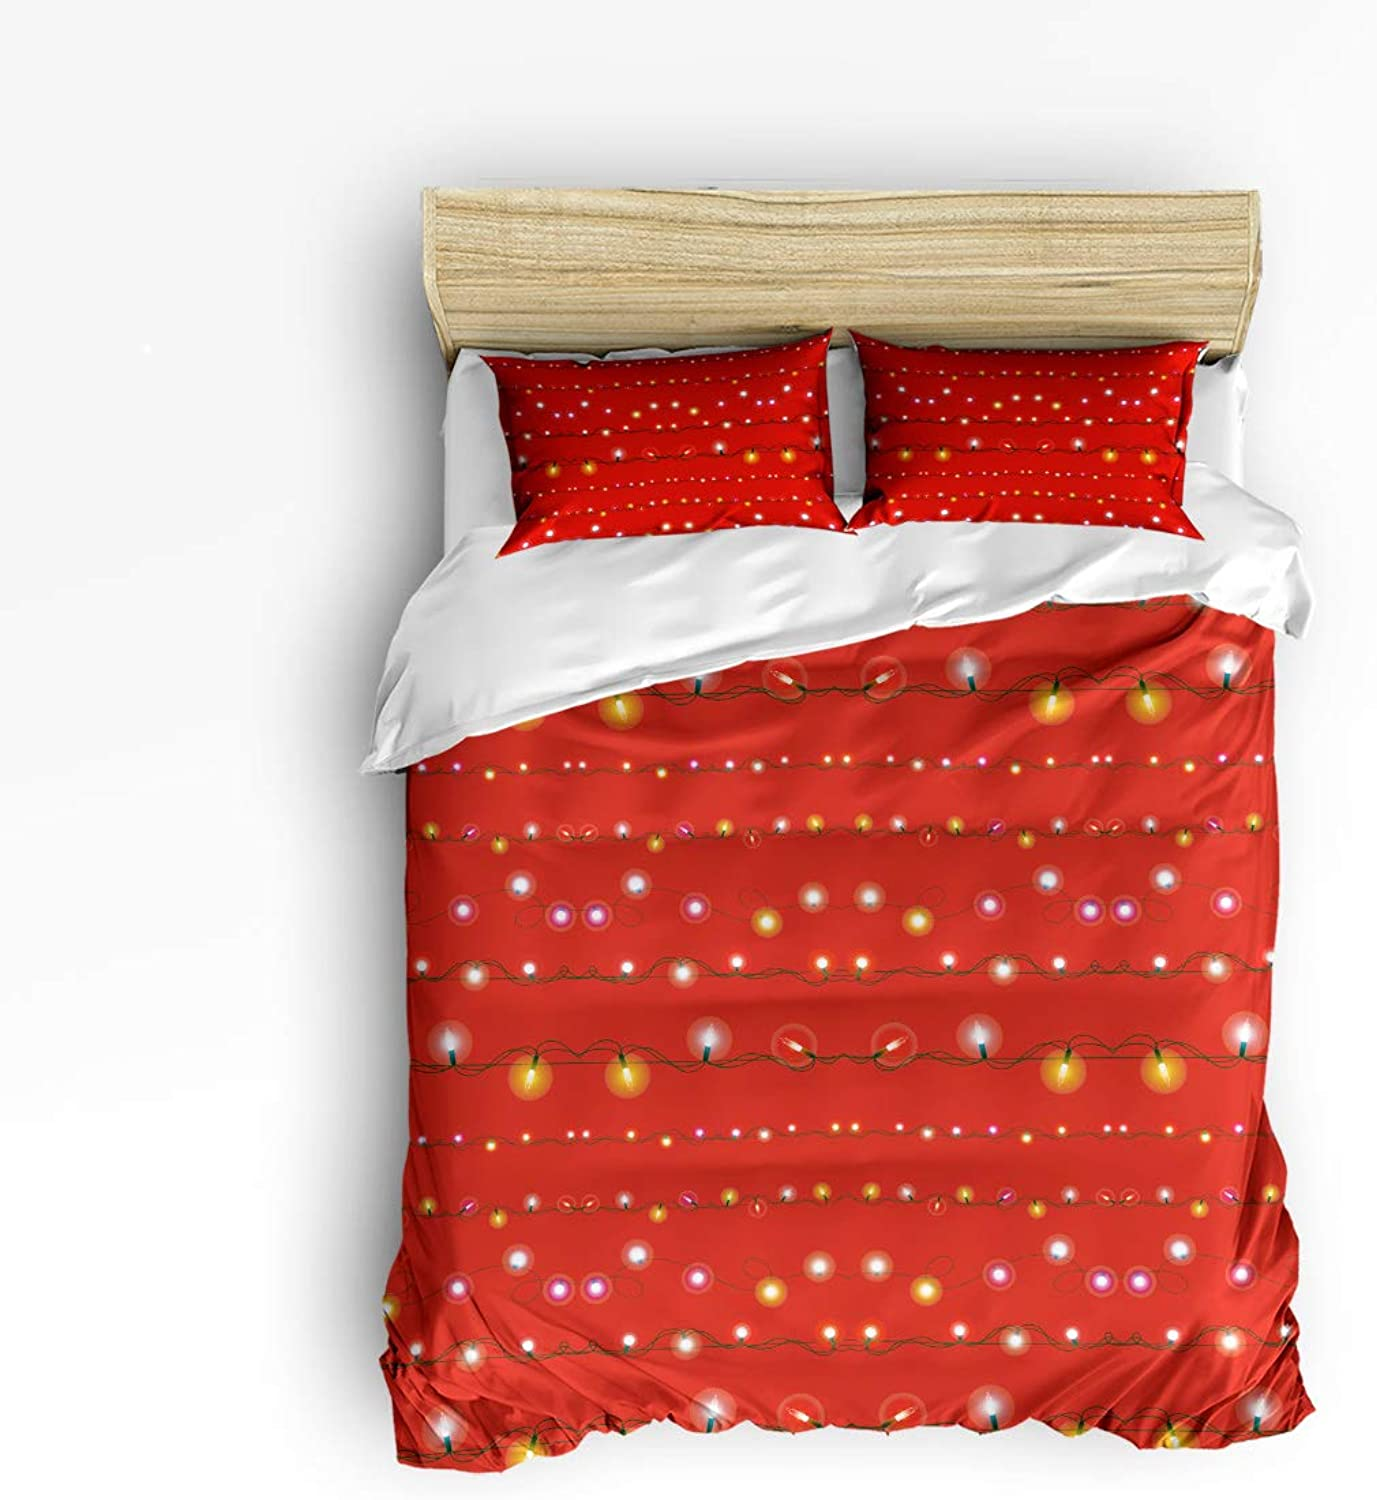 Xmas Celebration Themed 3 Pieces Luxury Duvet Cover Set Christmas Light Red Bedding Sets Bedroom Decoration Ultra Soft Bed Set with Zipper, 1 Duvet Cover and 2 Pillow Shams